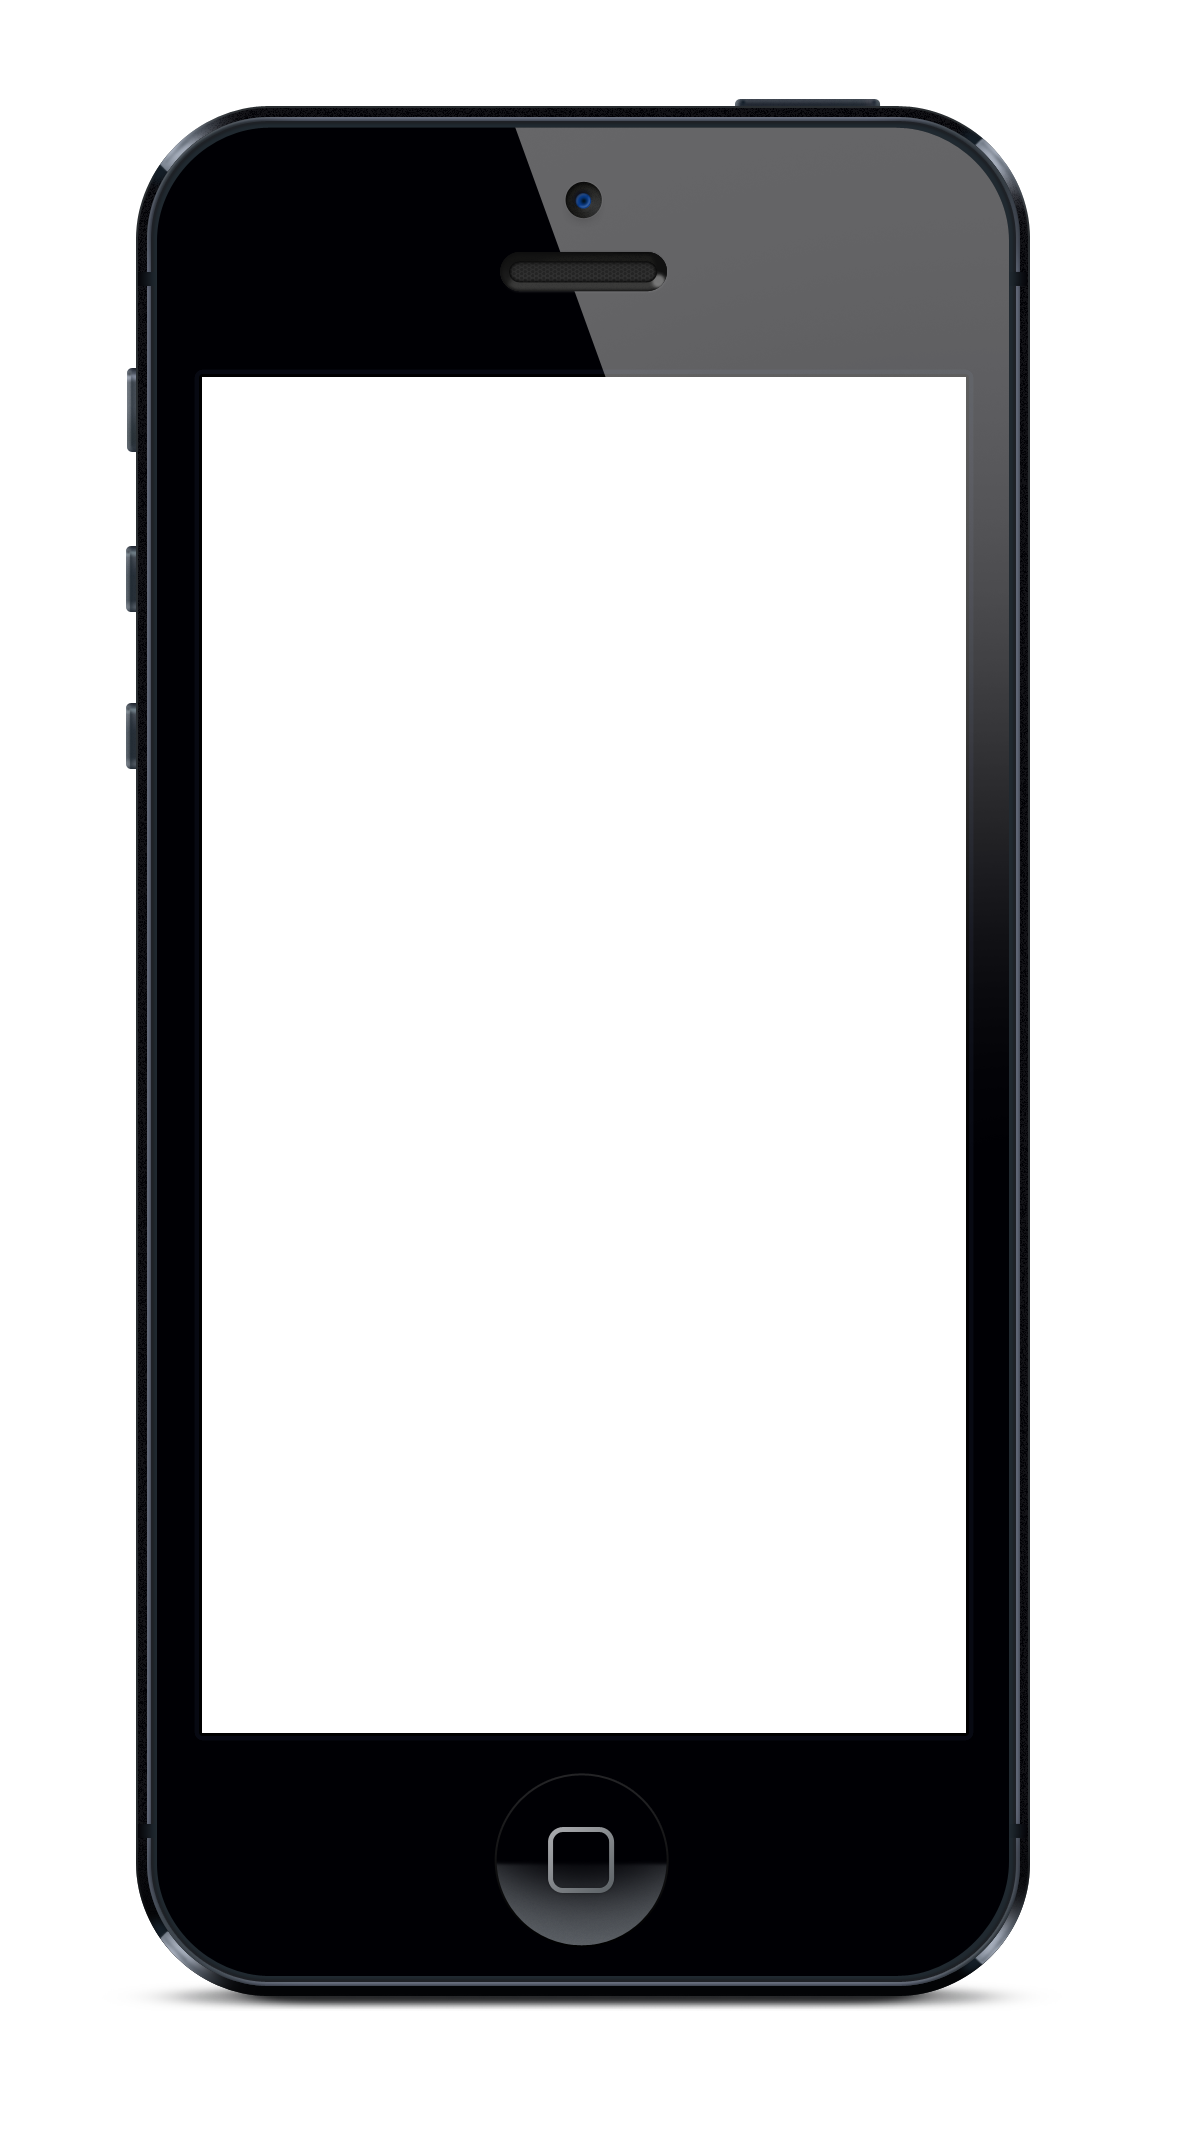 iphone bubble text png